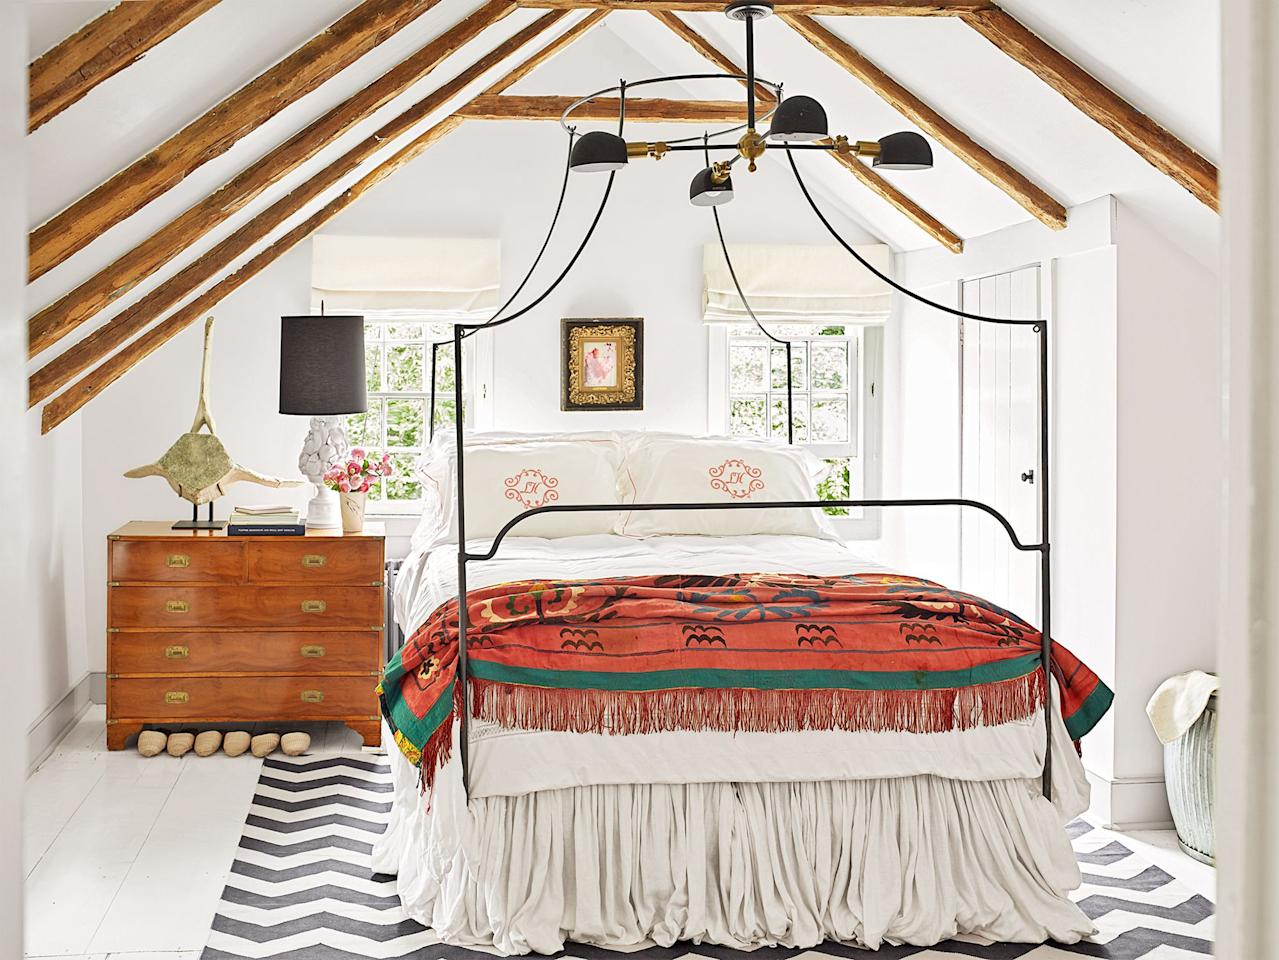 """<p>Shabby chic <a href=""""https://www.housebeautiful.com/room-decorating/bedrooms/g648/beautiful-designer-bedrooms/"""" target=""""_blank"""">bedrooms</a> are all about embracing your sentimental side and taking an <a href=""""https://www.housebeautiful.com/room-decorating/g26469368/decorating-with-vintage-furniture/"""" target=""""_blank"""">economical</a> approach to create a stylish, cozy, grounded sanctuary. Invented by designer <a href=""""https://www.shabbychic.com/"""" target=""""_blank"""">Rachel Ashwell</a>, the style's rustic and romantic, where every single item has a story to tell! That's not to say that all shabby chic bedrooms follow the exact same aesthetic—they can skew traditional and refined, <a href=""""https://www.housebeautiful.com/room-decorating/bedrooms/g26533112/minimalist-bedroom-ideas/"""" target=""""_blank"""">minimalist</a>, even contemporary. Read on for 26 shabby chic <a href=""""https://www.housebeautiful.com/room-decorating/bedrooms/g27287878/cool-beds/"""" target=""""_blank"""">bedroom ideas</a>, designer examples, and shopping tips to help you create your dream space. </p>"""